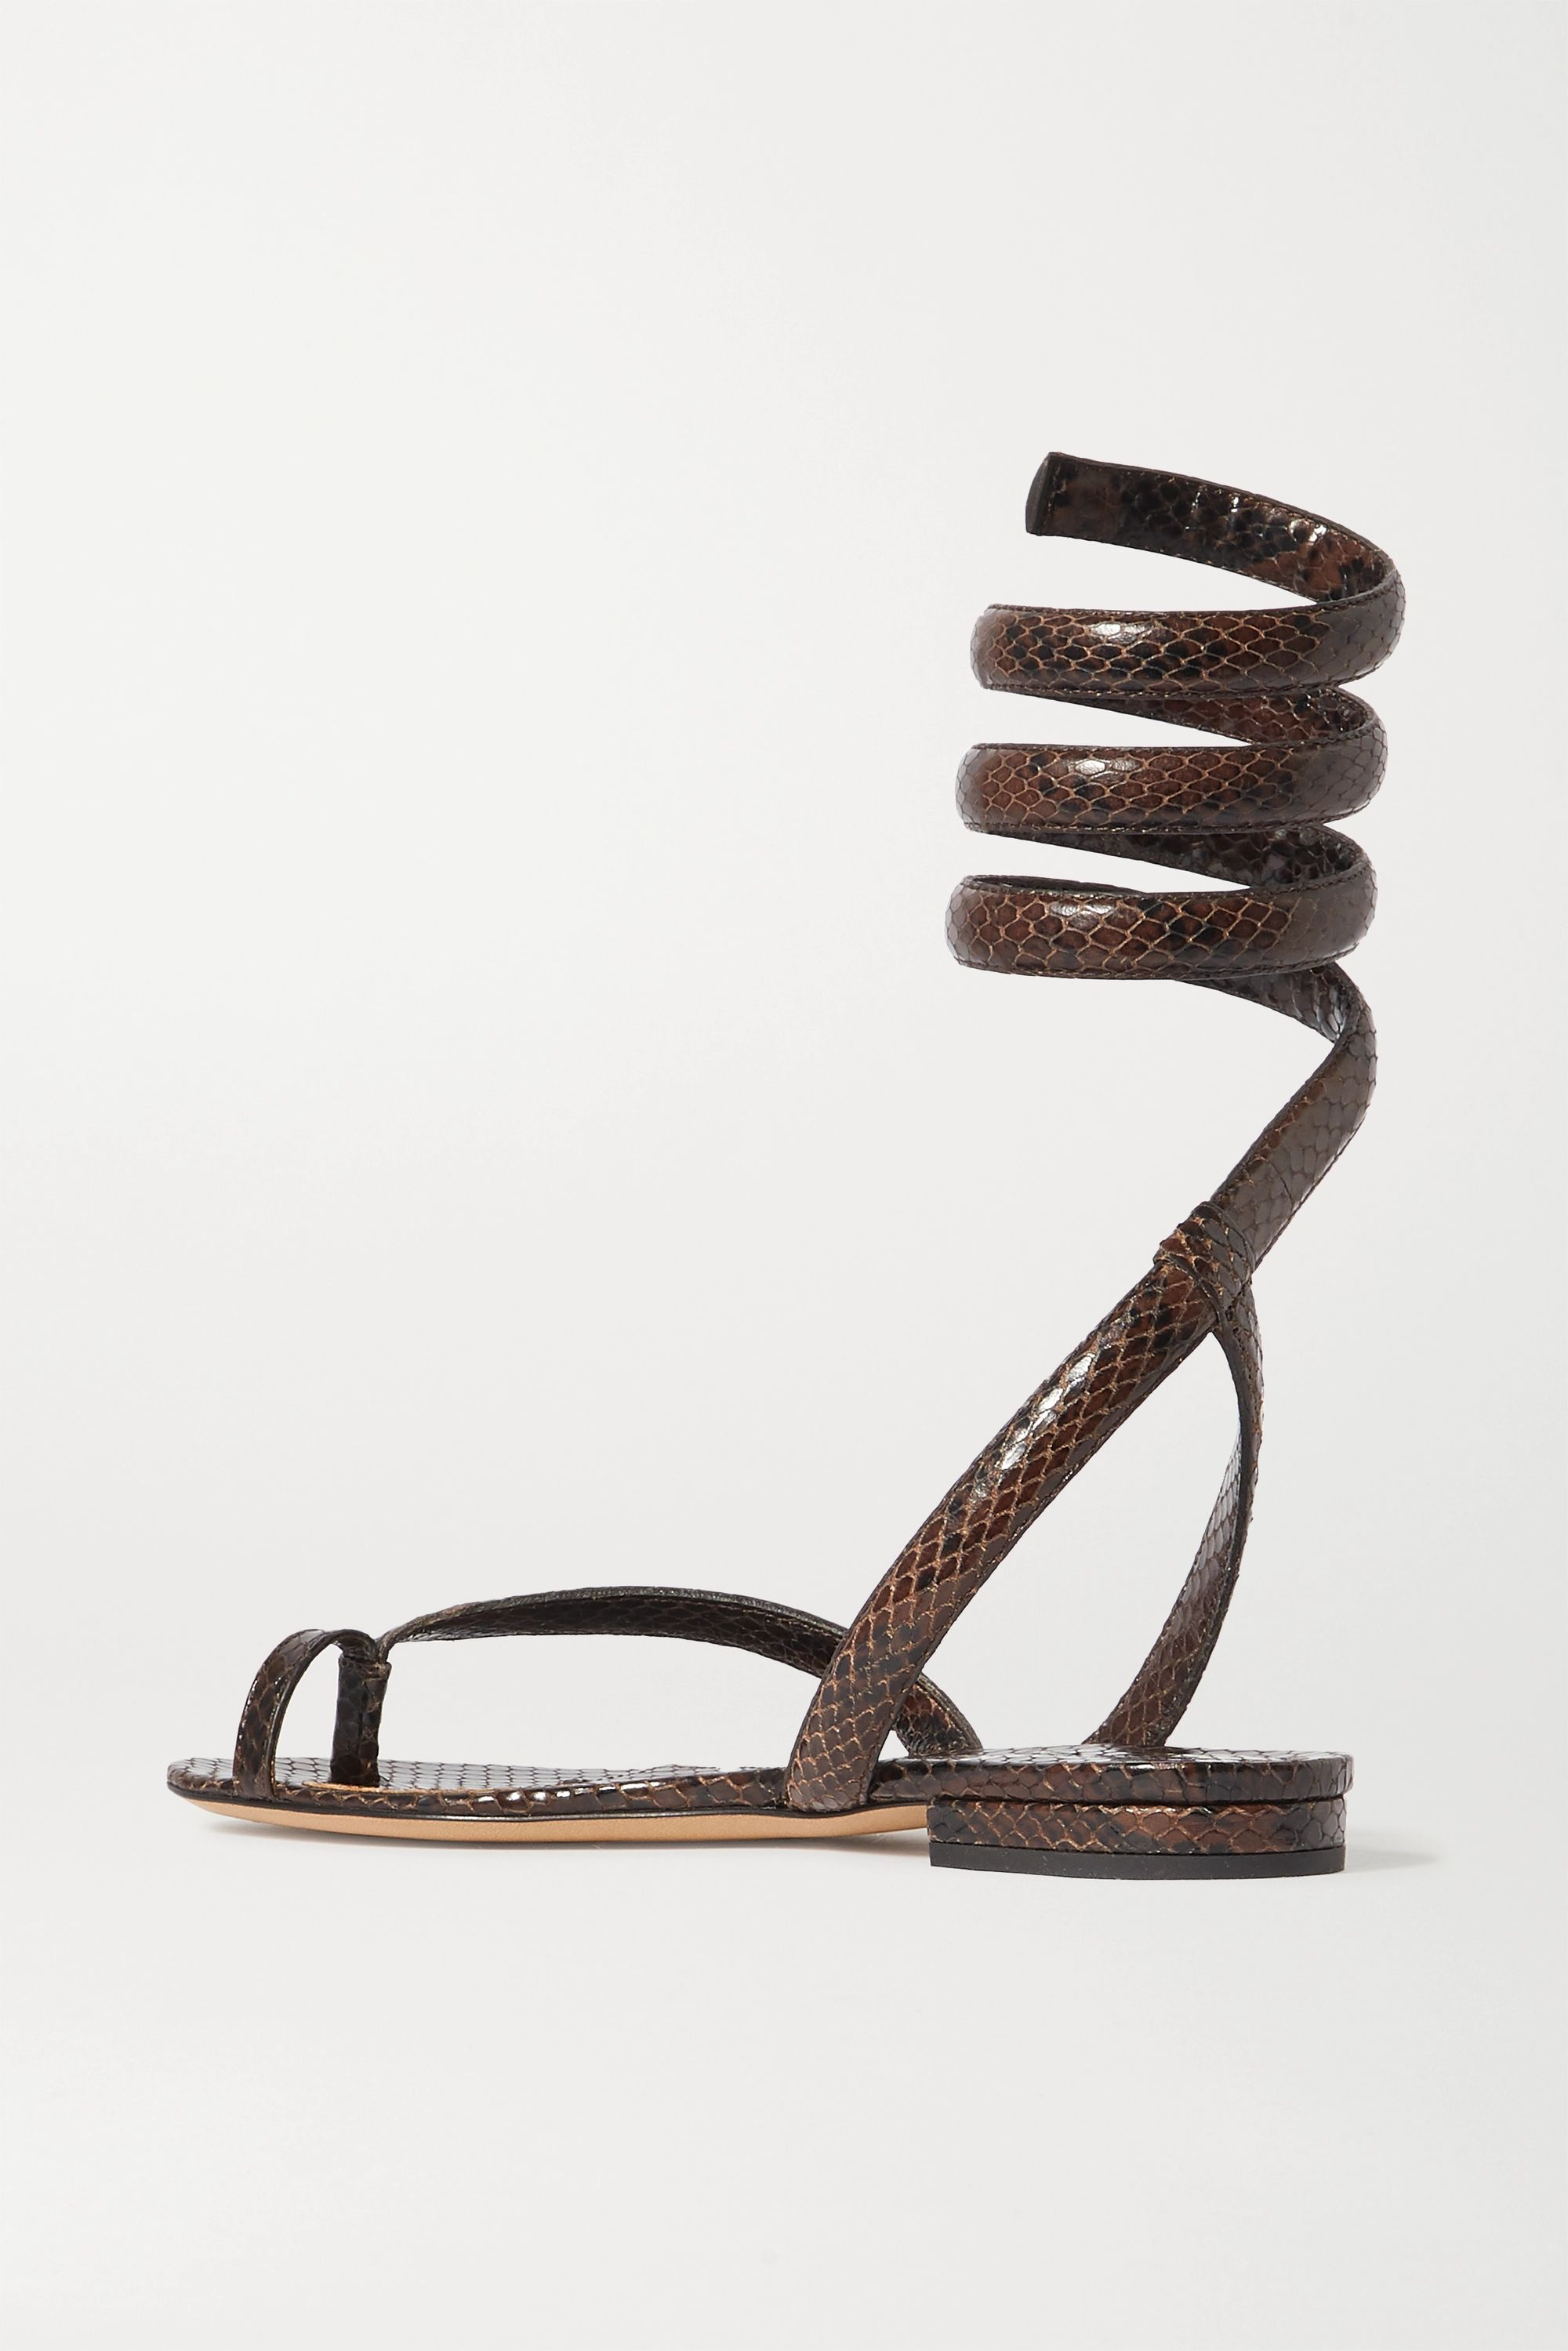 Bottega Veneta Snake-effect leather sandals